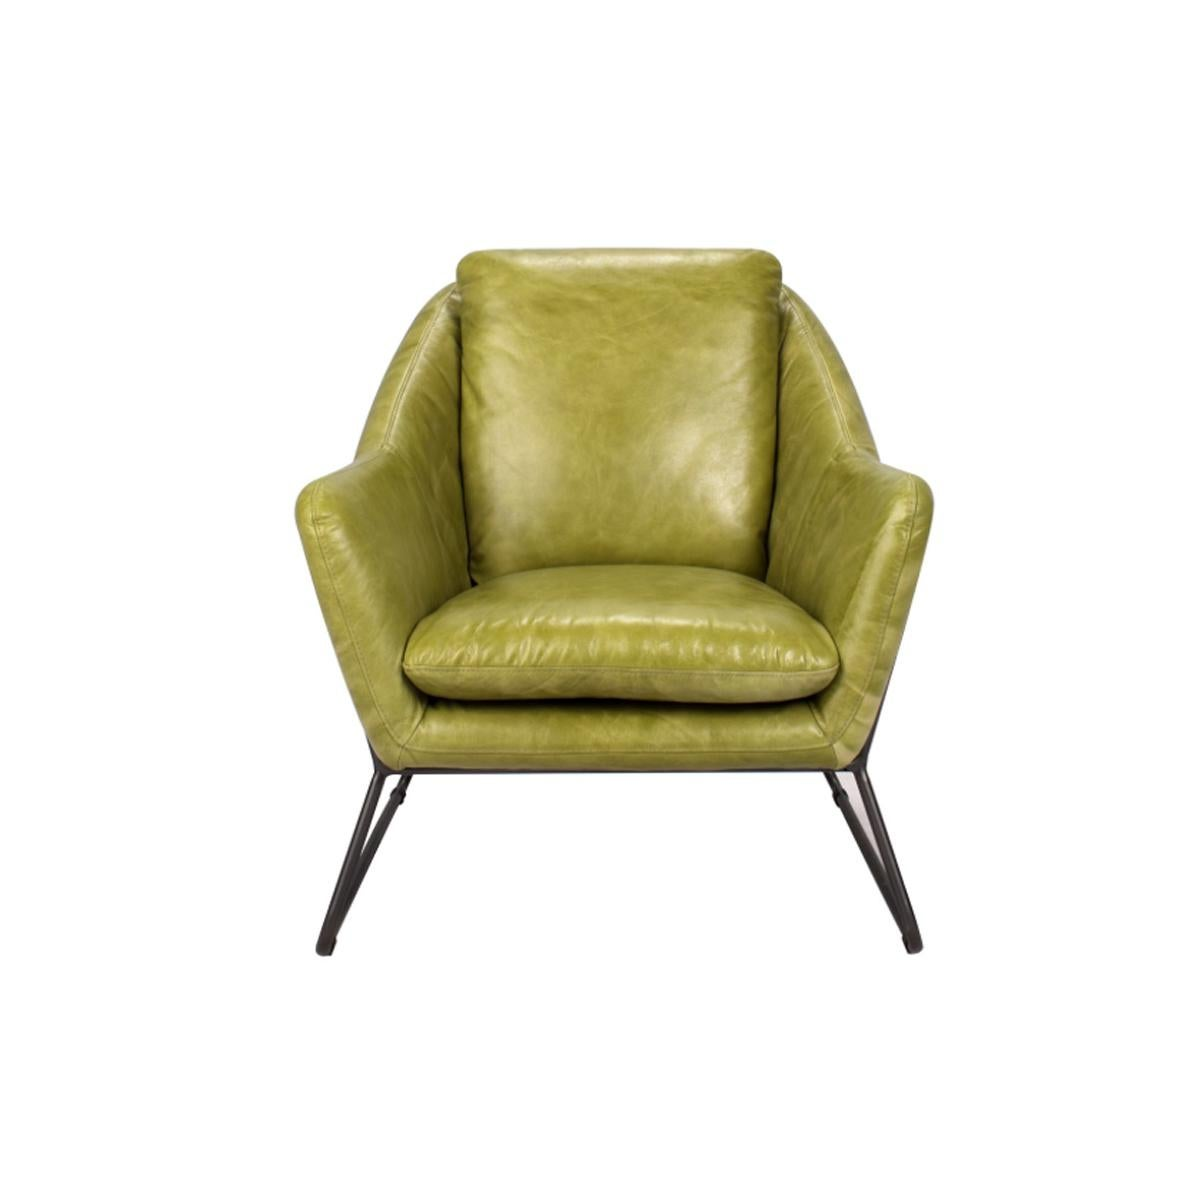 Make A Statement With This Elegant Lime Green Leather Club Chair. The Bent  Metal Frame